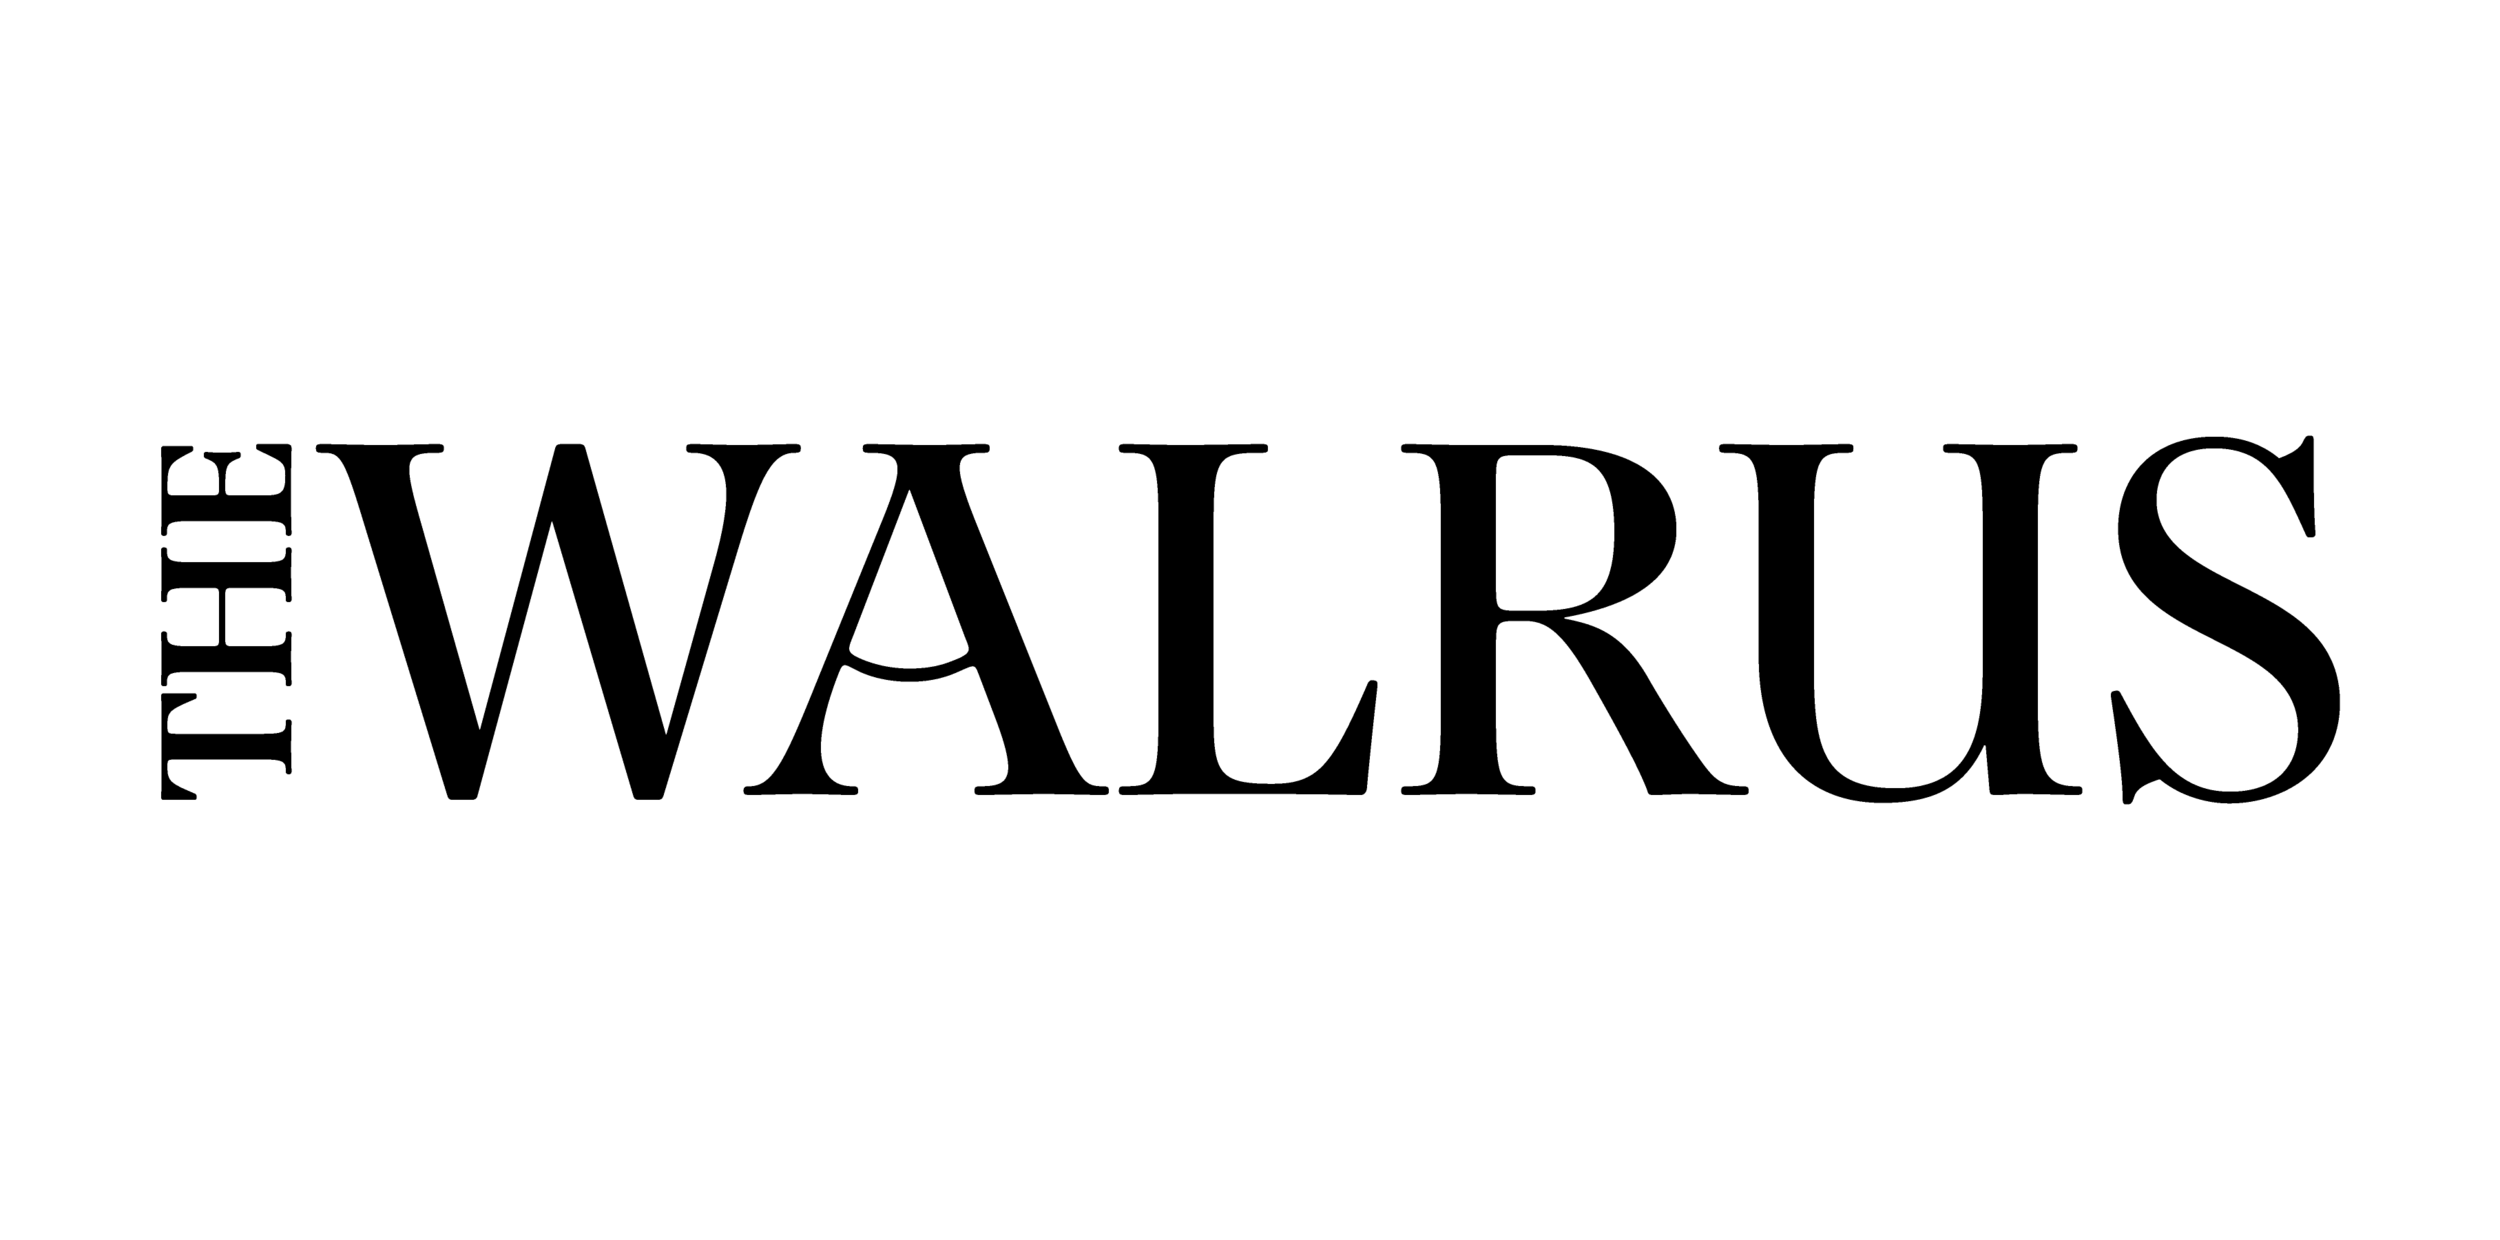 The Walrus feature by Richard Trapunski